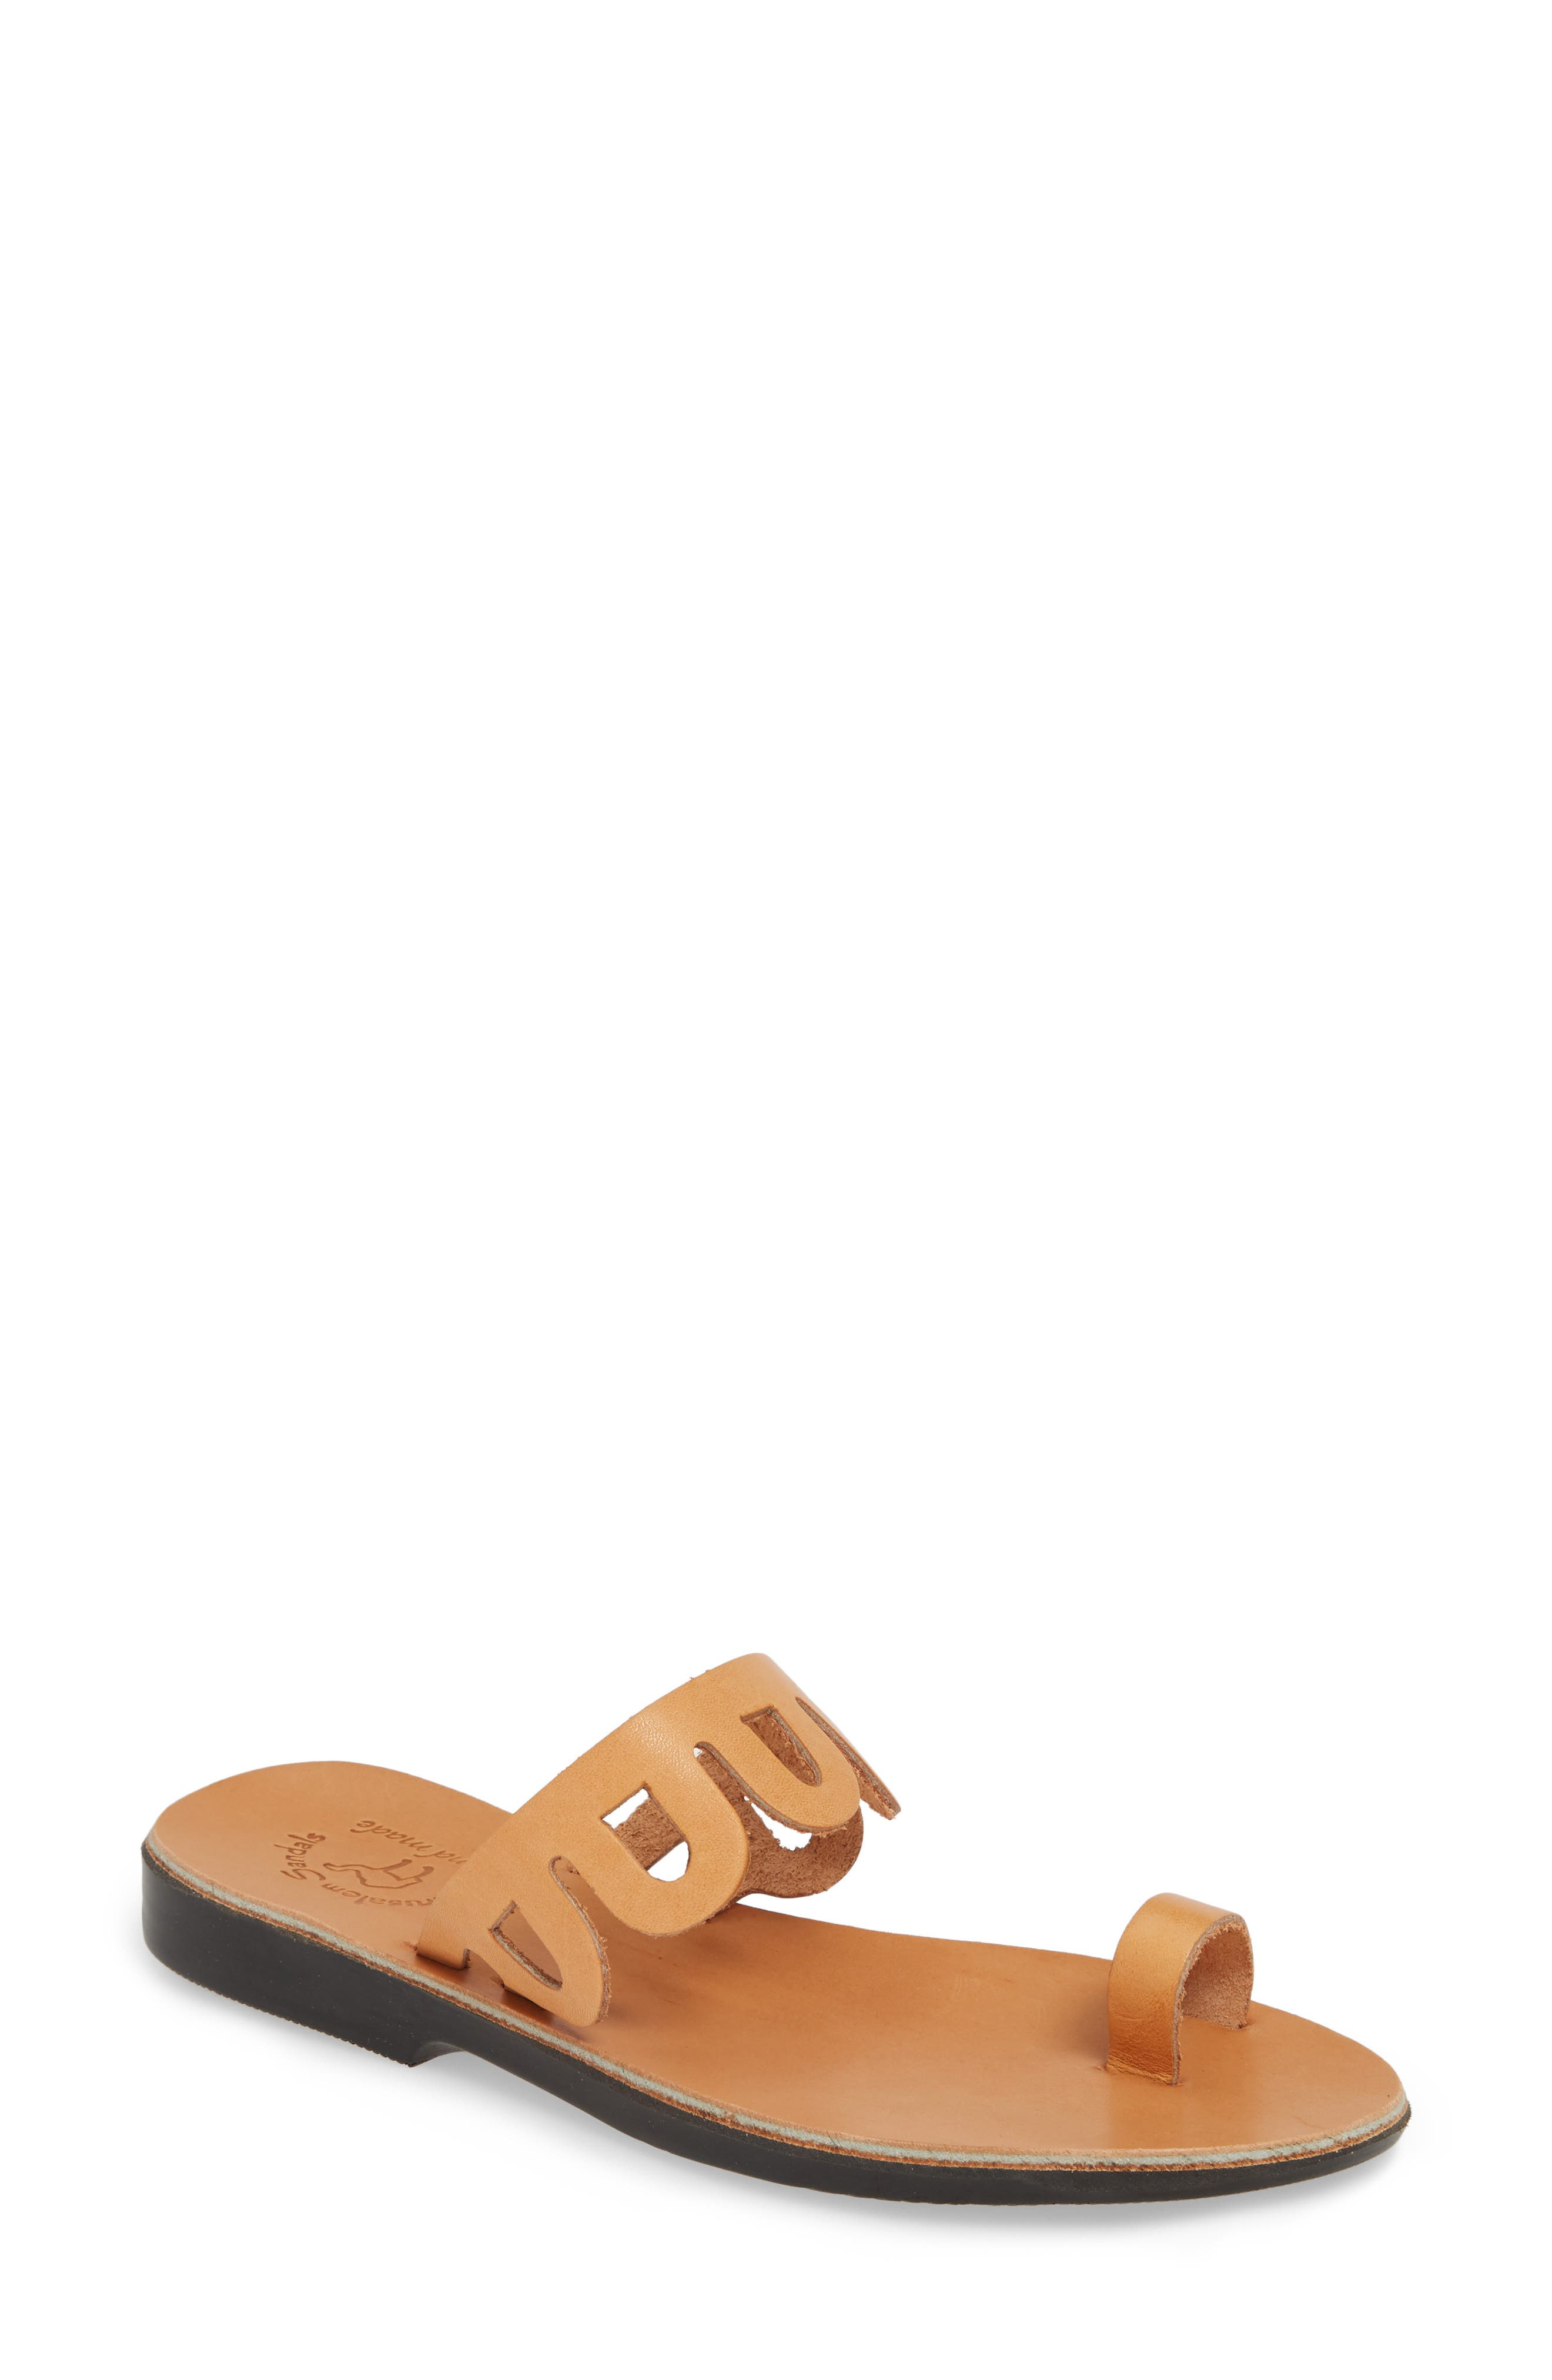 Loopy cutouts look like minimalist lace against the skin in this handcrafted toe-loop sandal made with vegetable-tanned, hypoallergenic leather. Style Name: Jerusalem Sandals Aja Slide Sandal (Women). Style Number: 5790584. Available in stores.